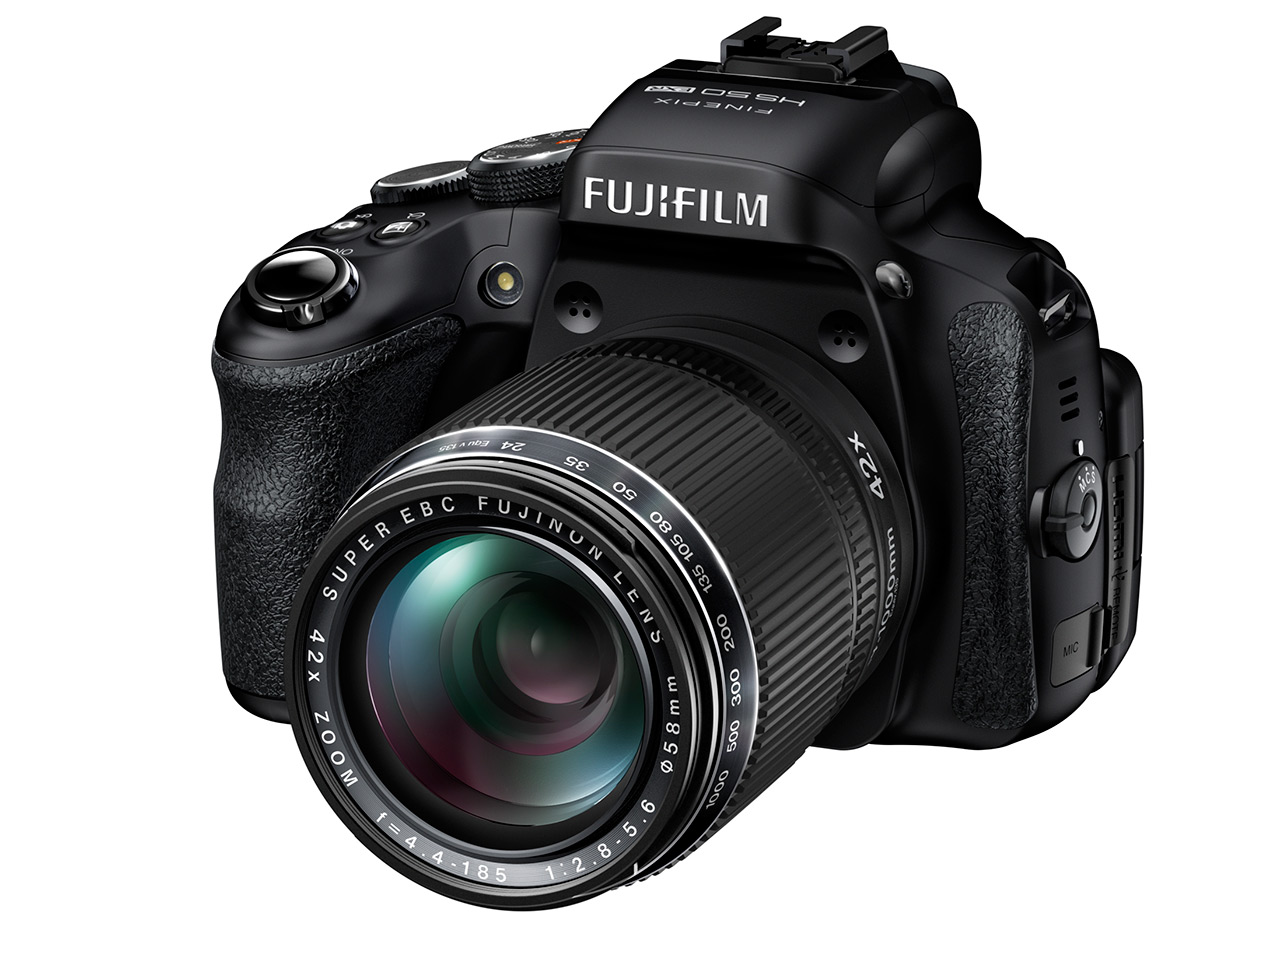 Fuji Fuji Fujifilm Launches Finepix Hs50exr And Hs35exr High End